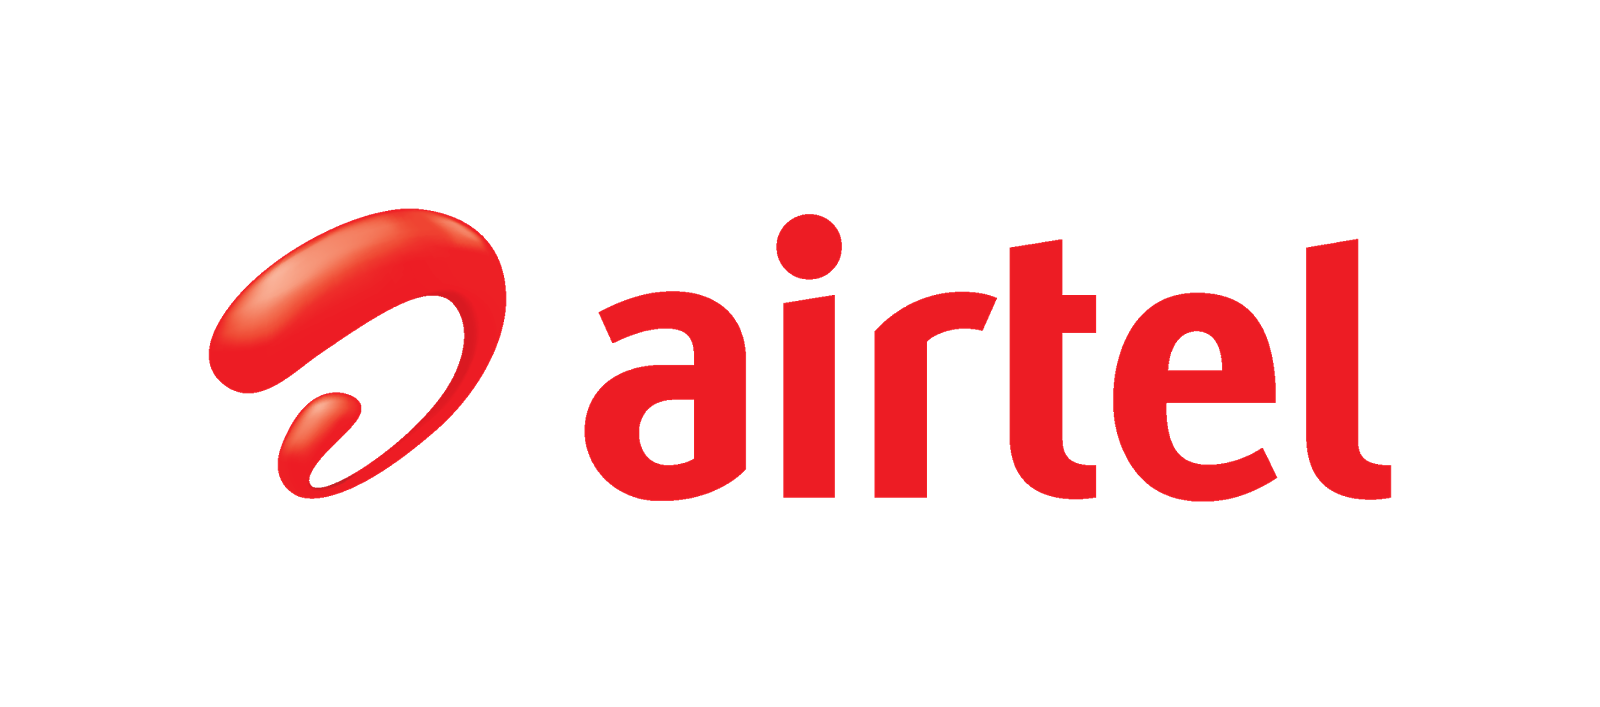 Airtel withdraw the VoIP calls pack temporarily | MobileTelco